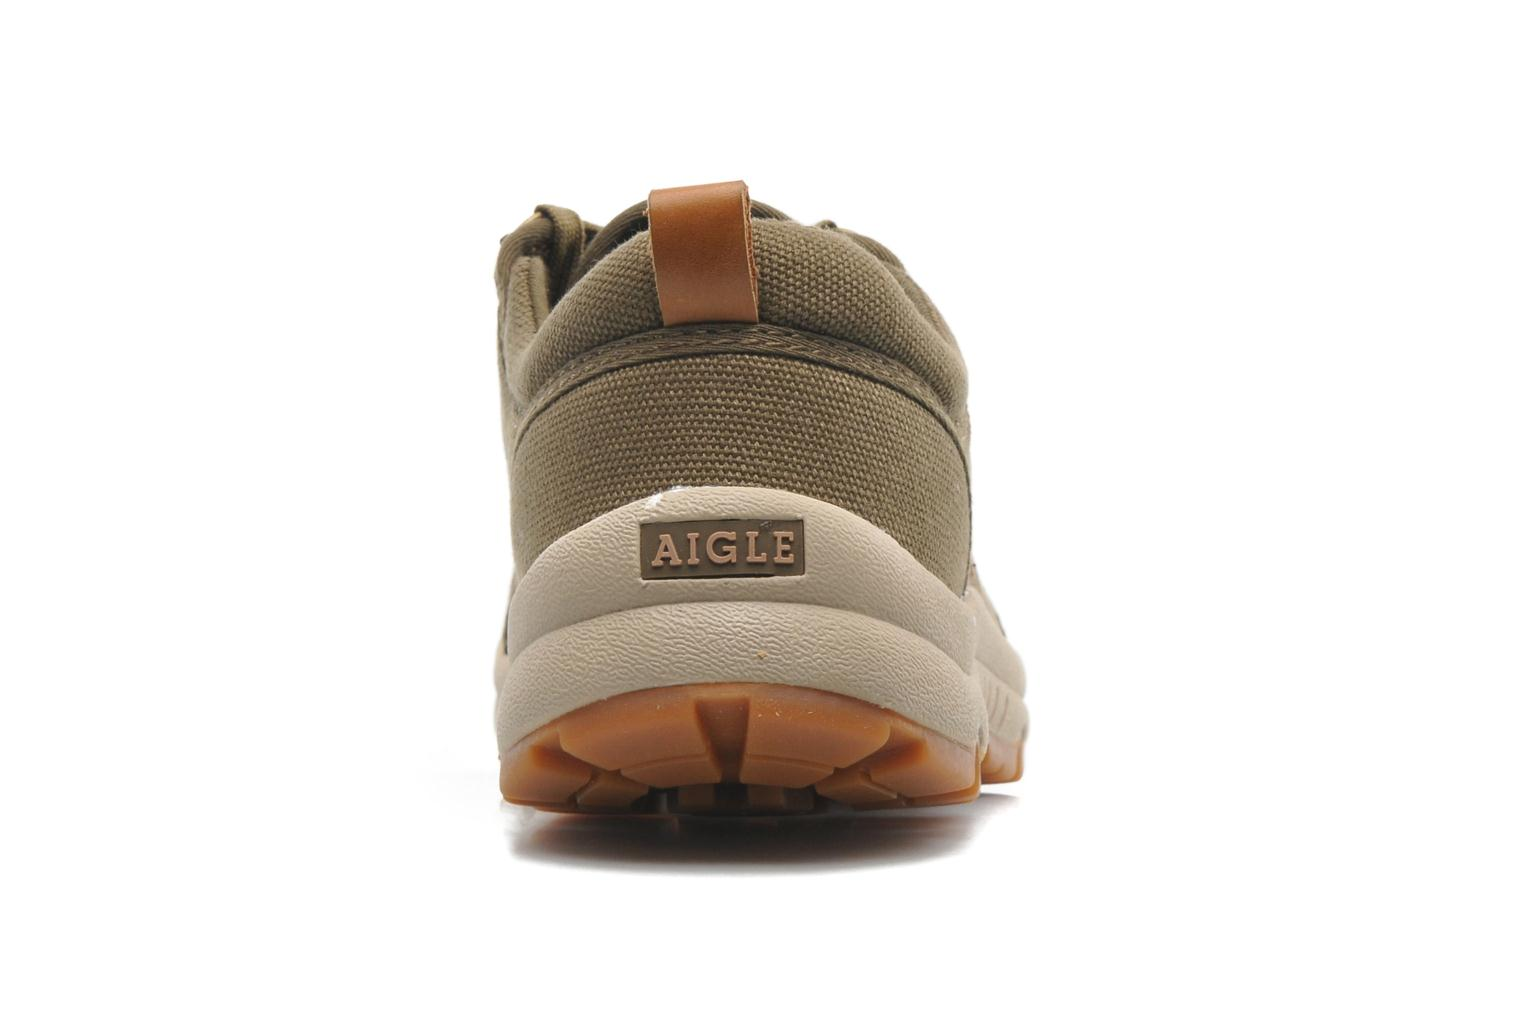 Deportivas Aigle Tenere Light Low Cvs Verde vista lateral derecha